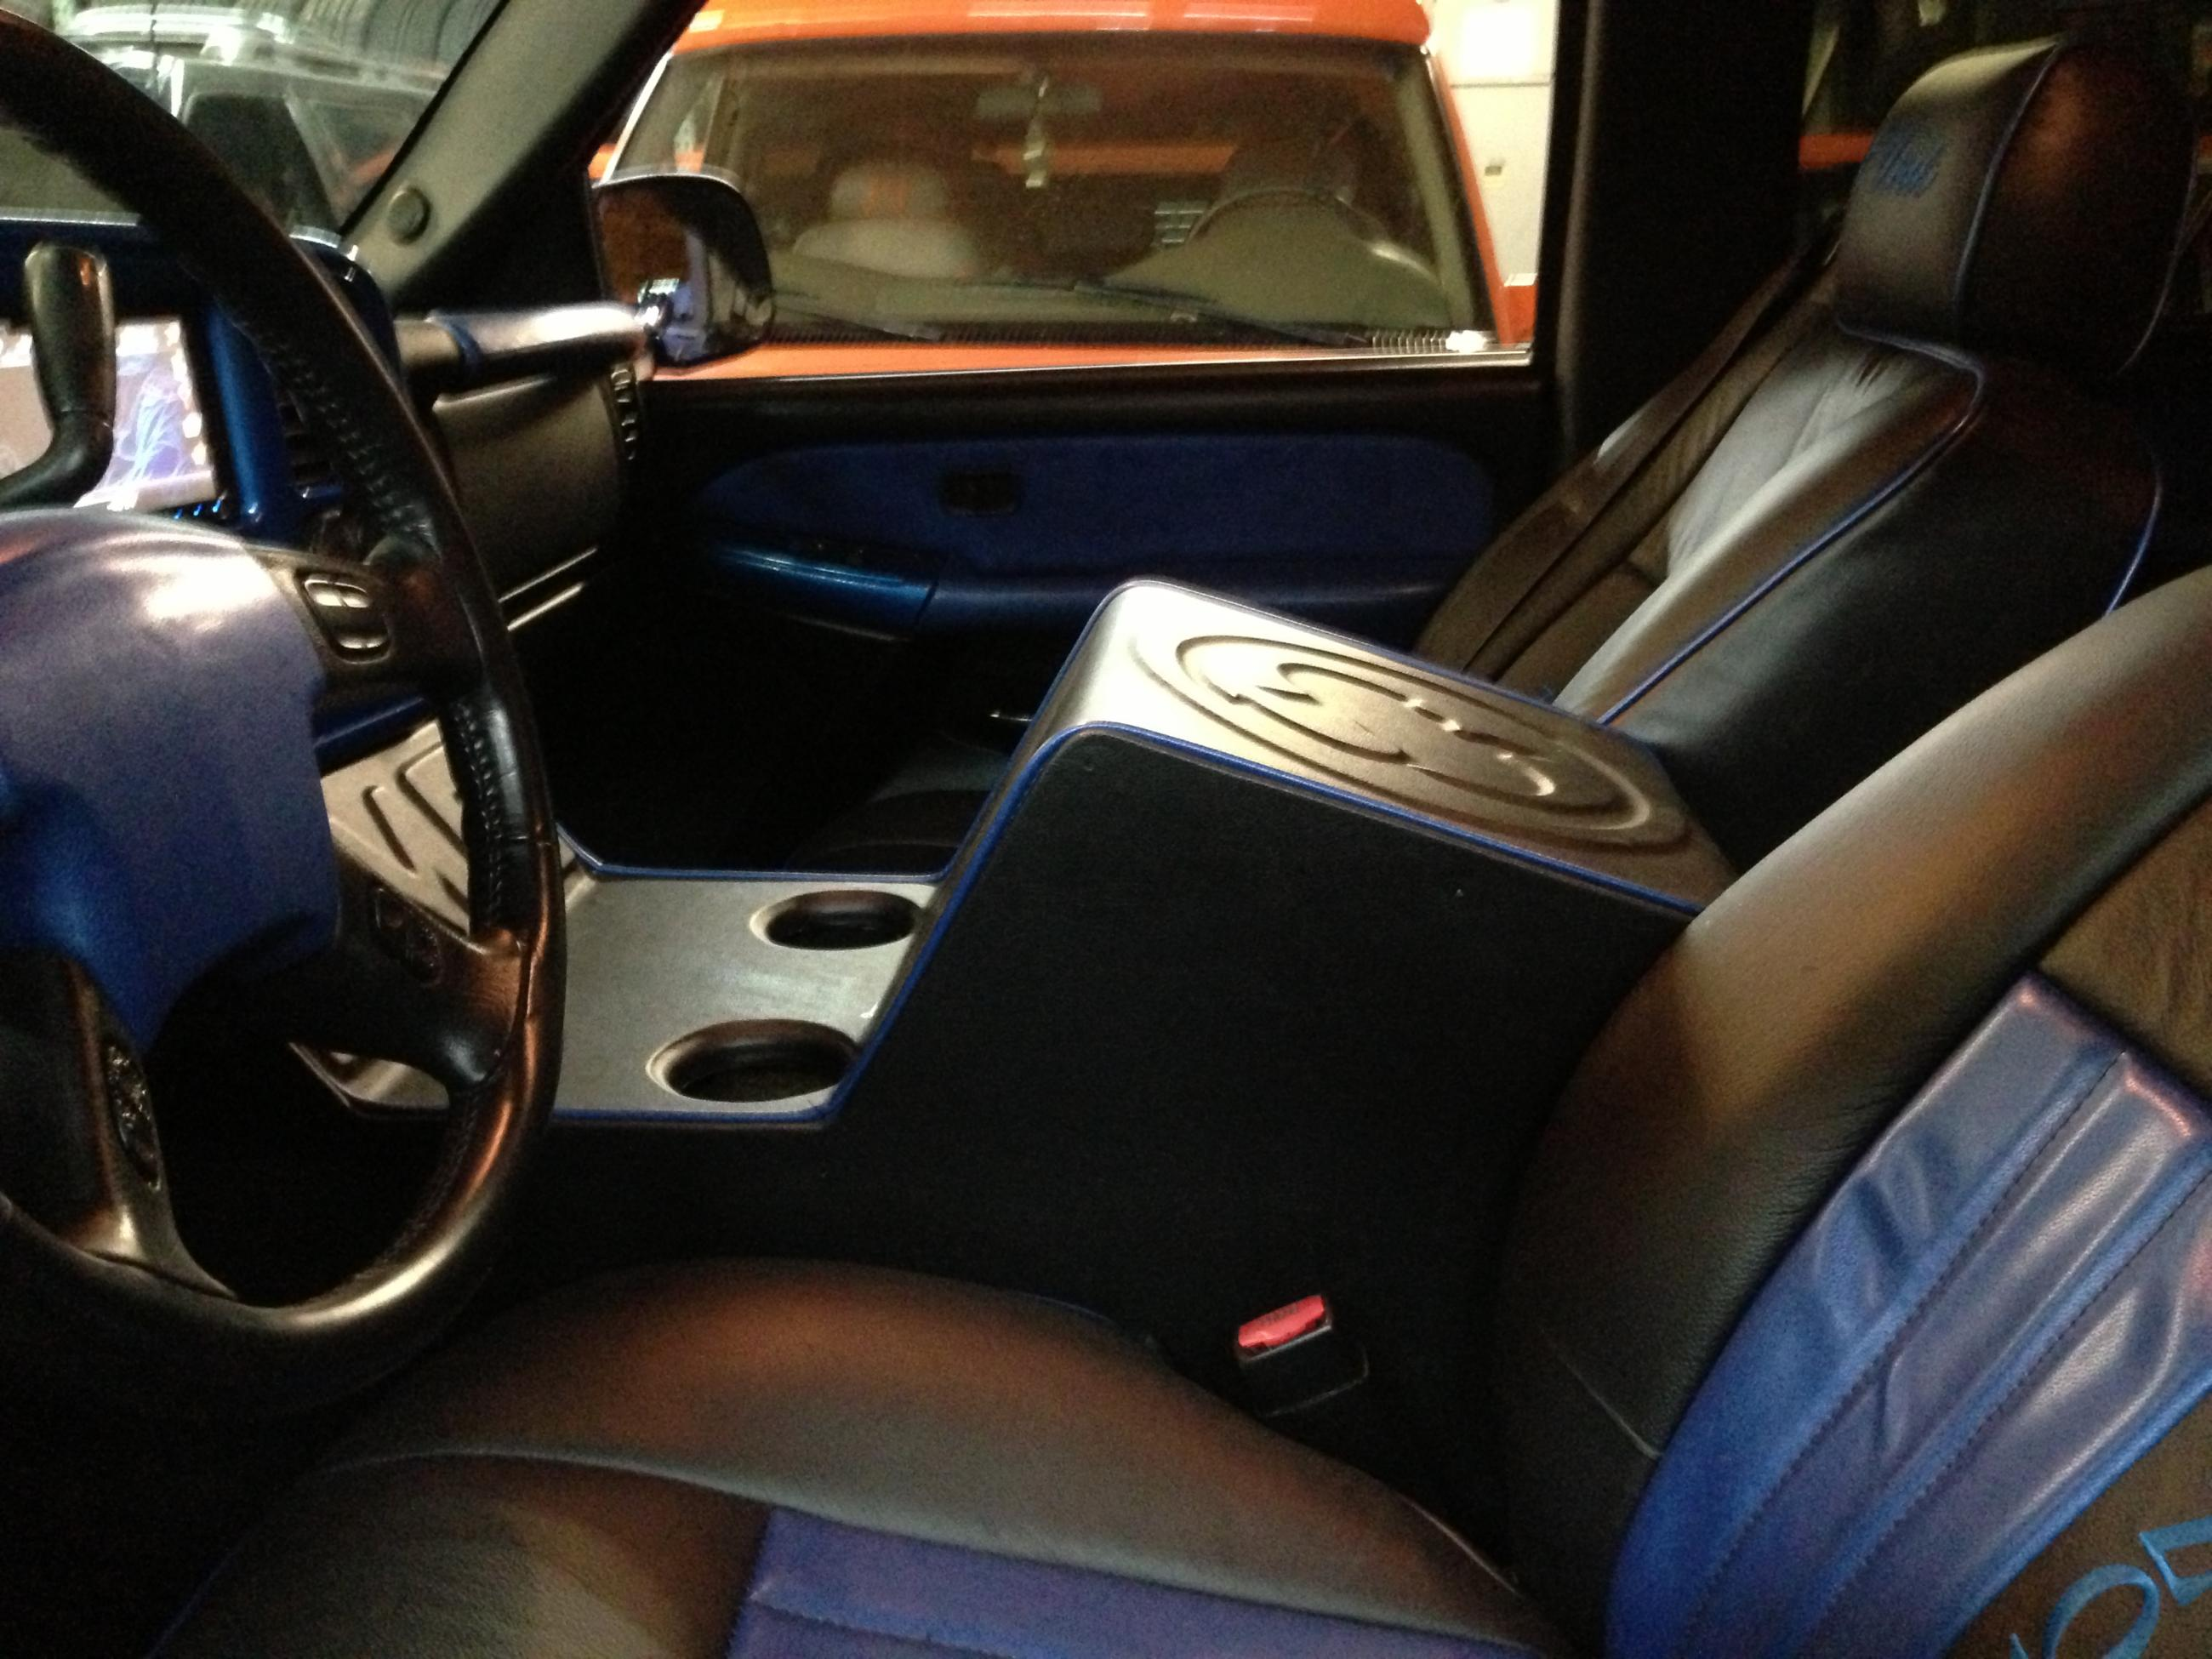 J&J: Custom-Fabricated Center Console with Sub-Woofers Customized Inside